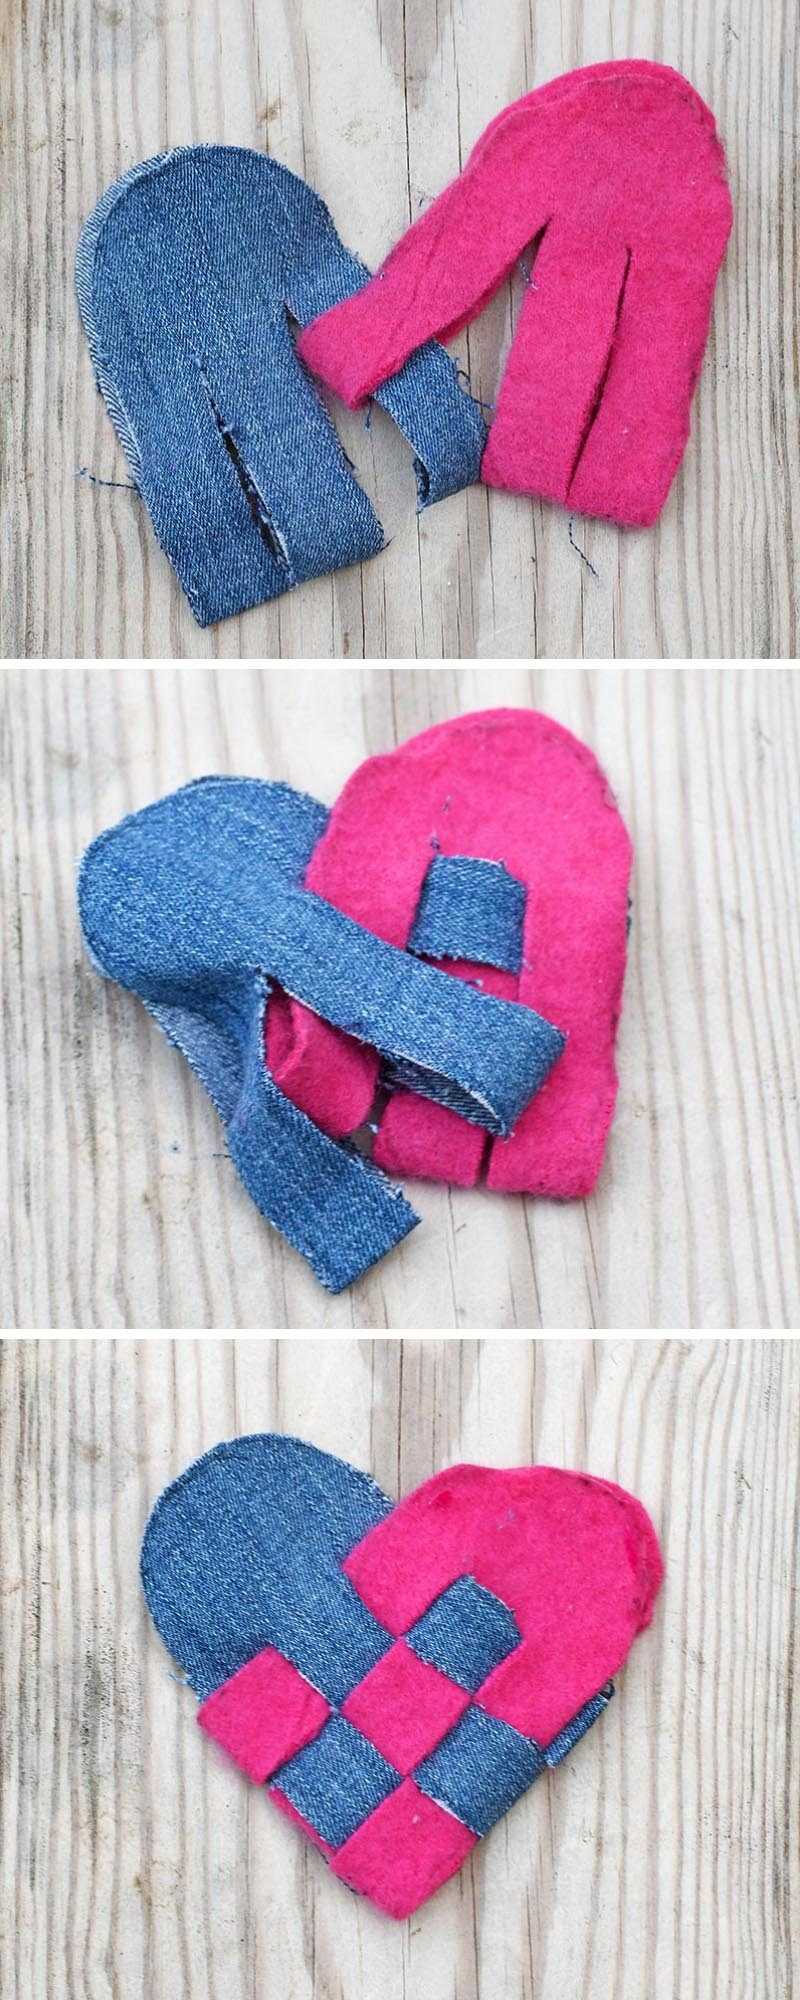 Making upcycled woven scandinavian hearts for decoration